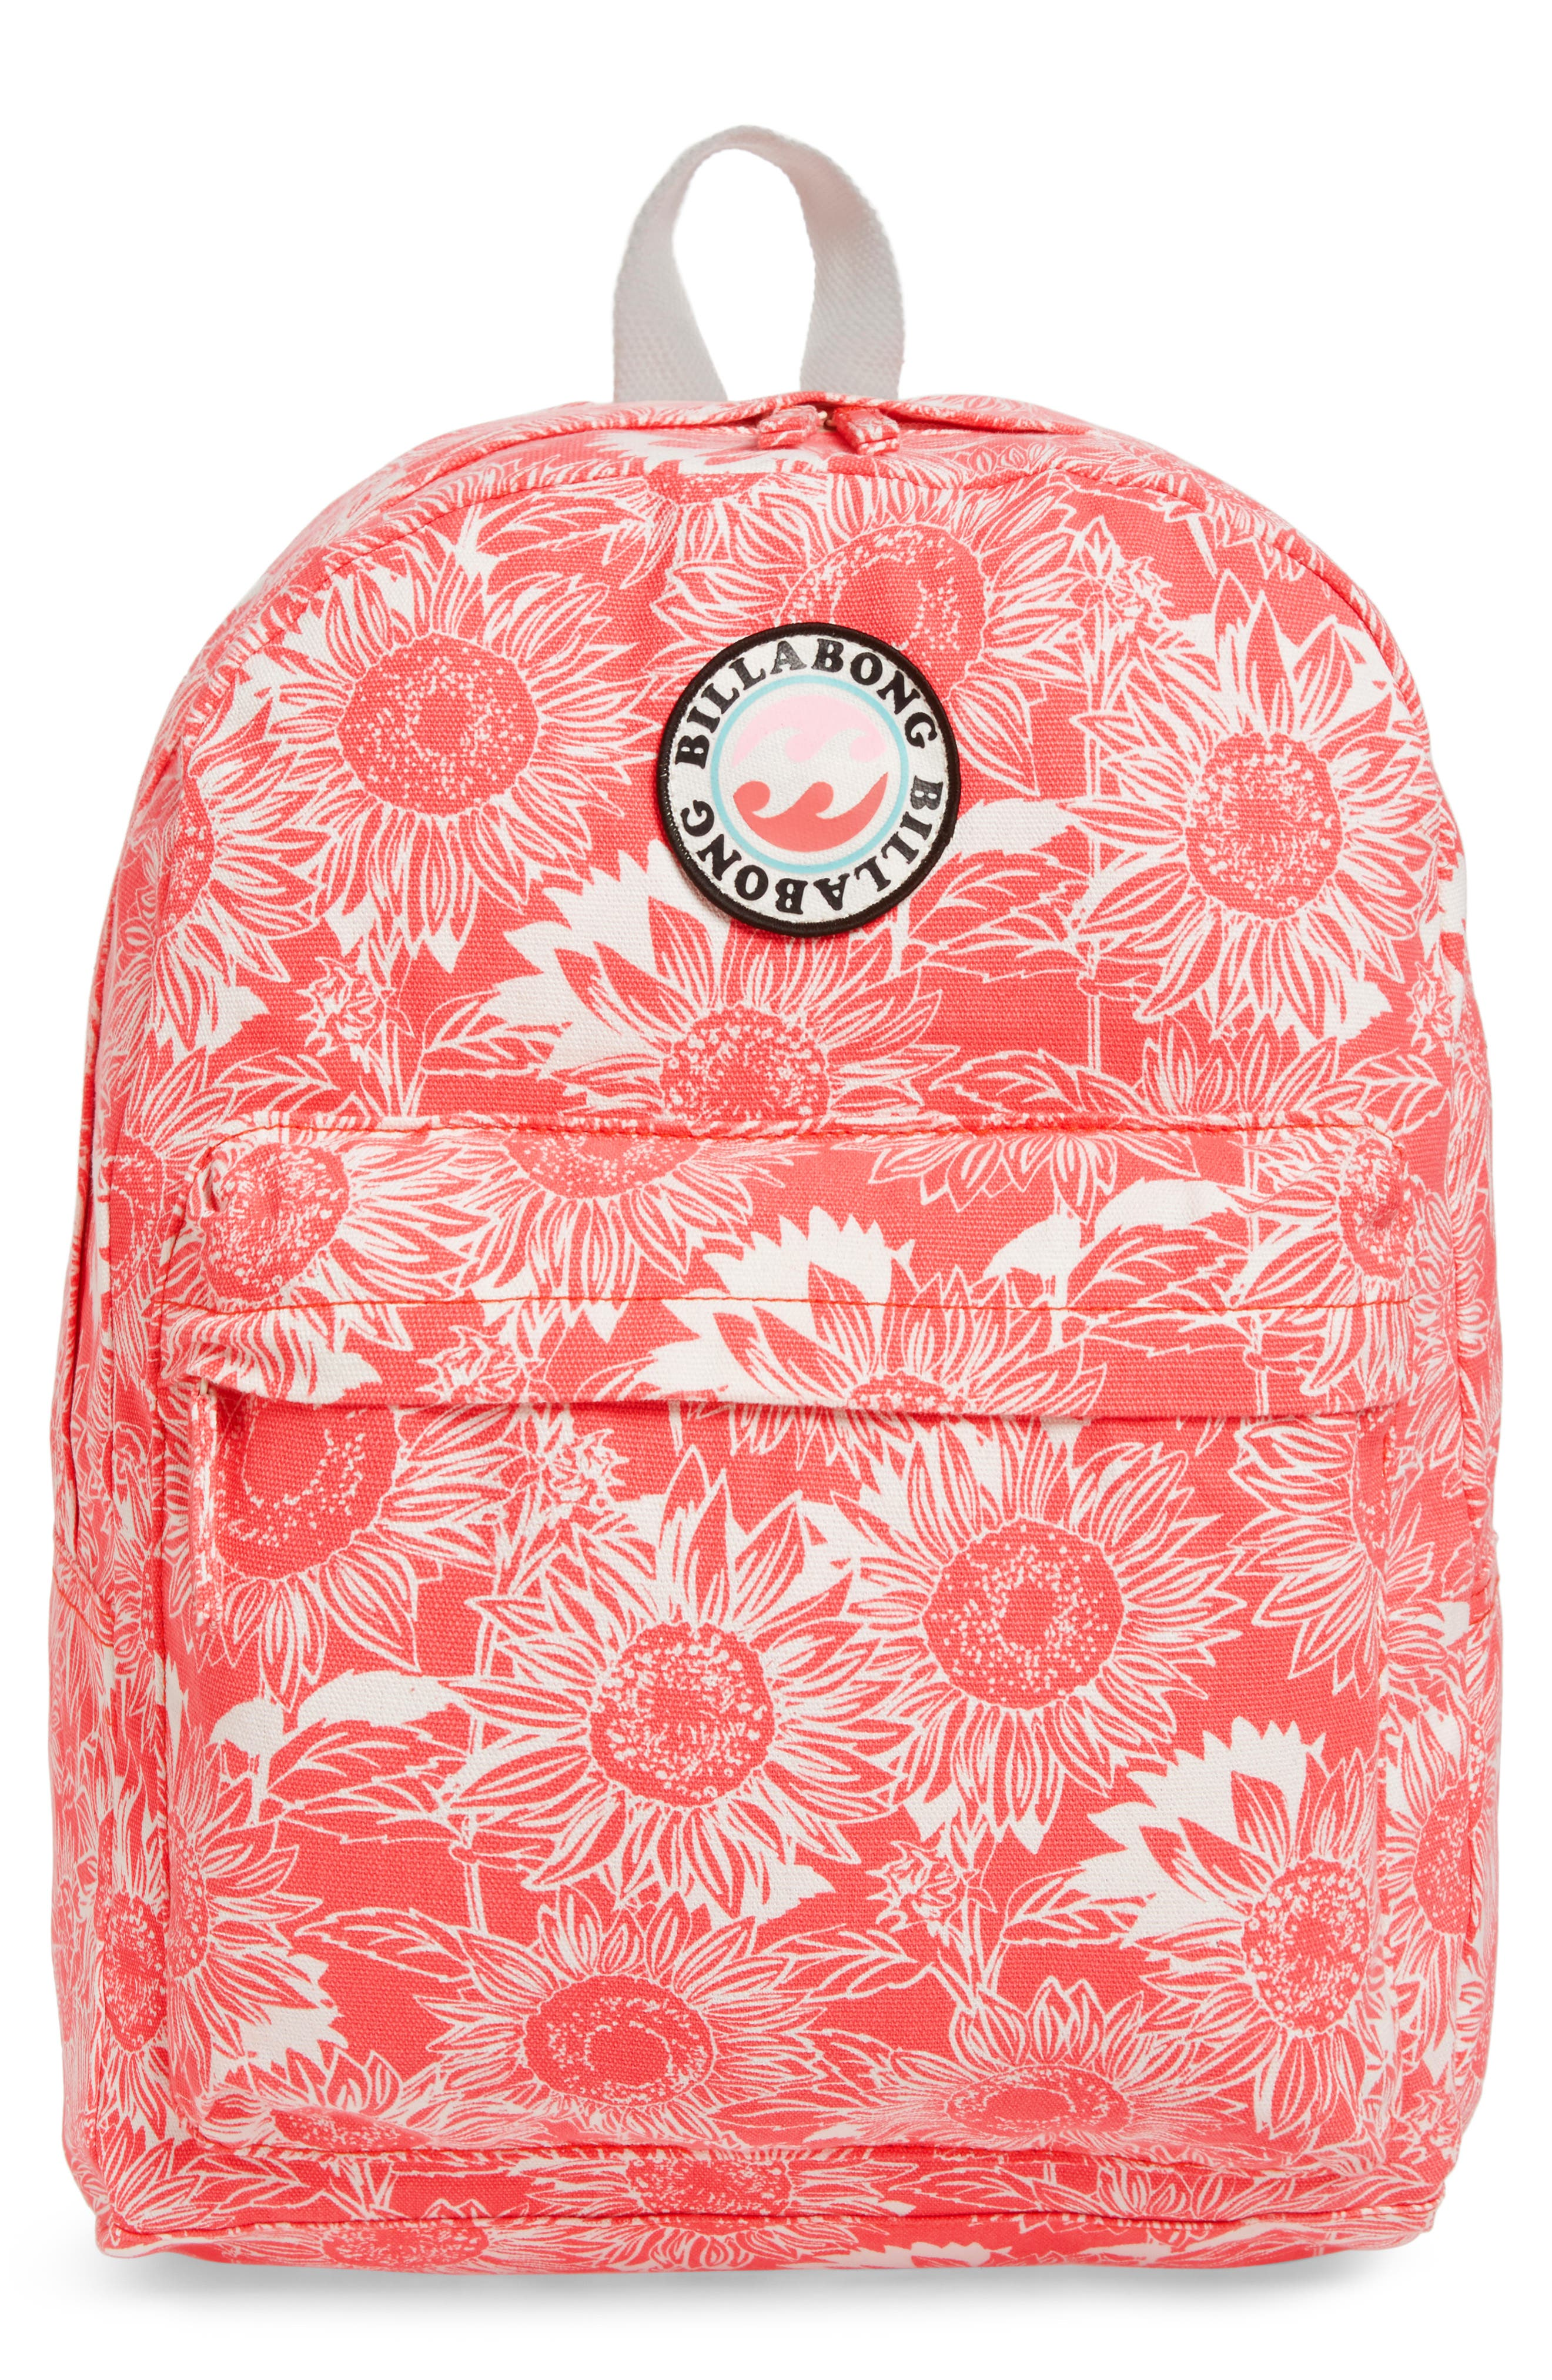 Play Date Canvas Backpack,                         Main,                         color, Vintage Coral